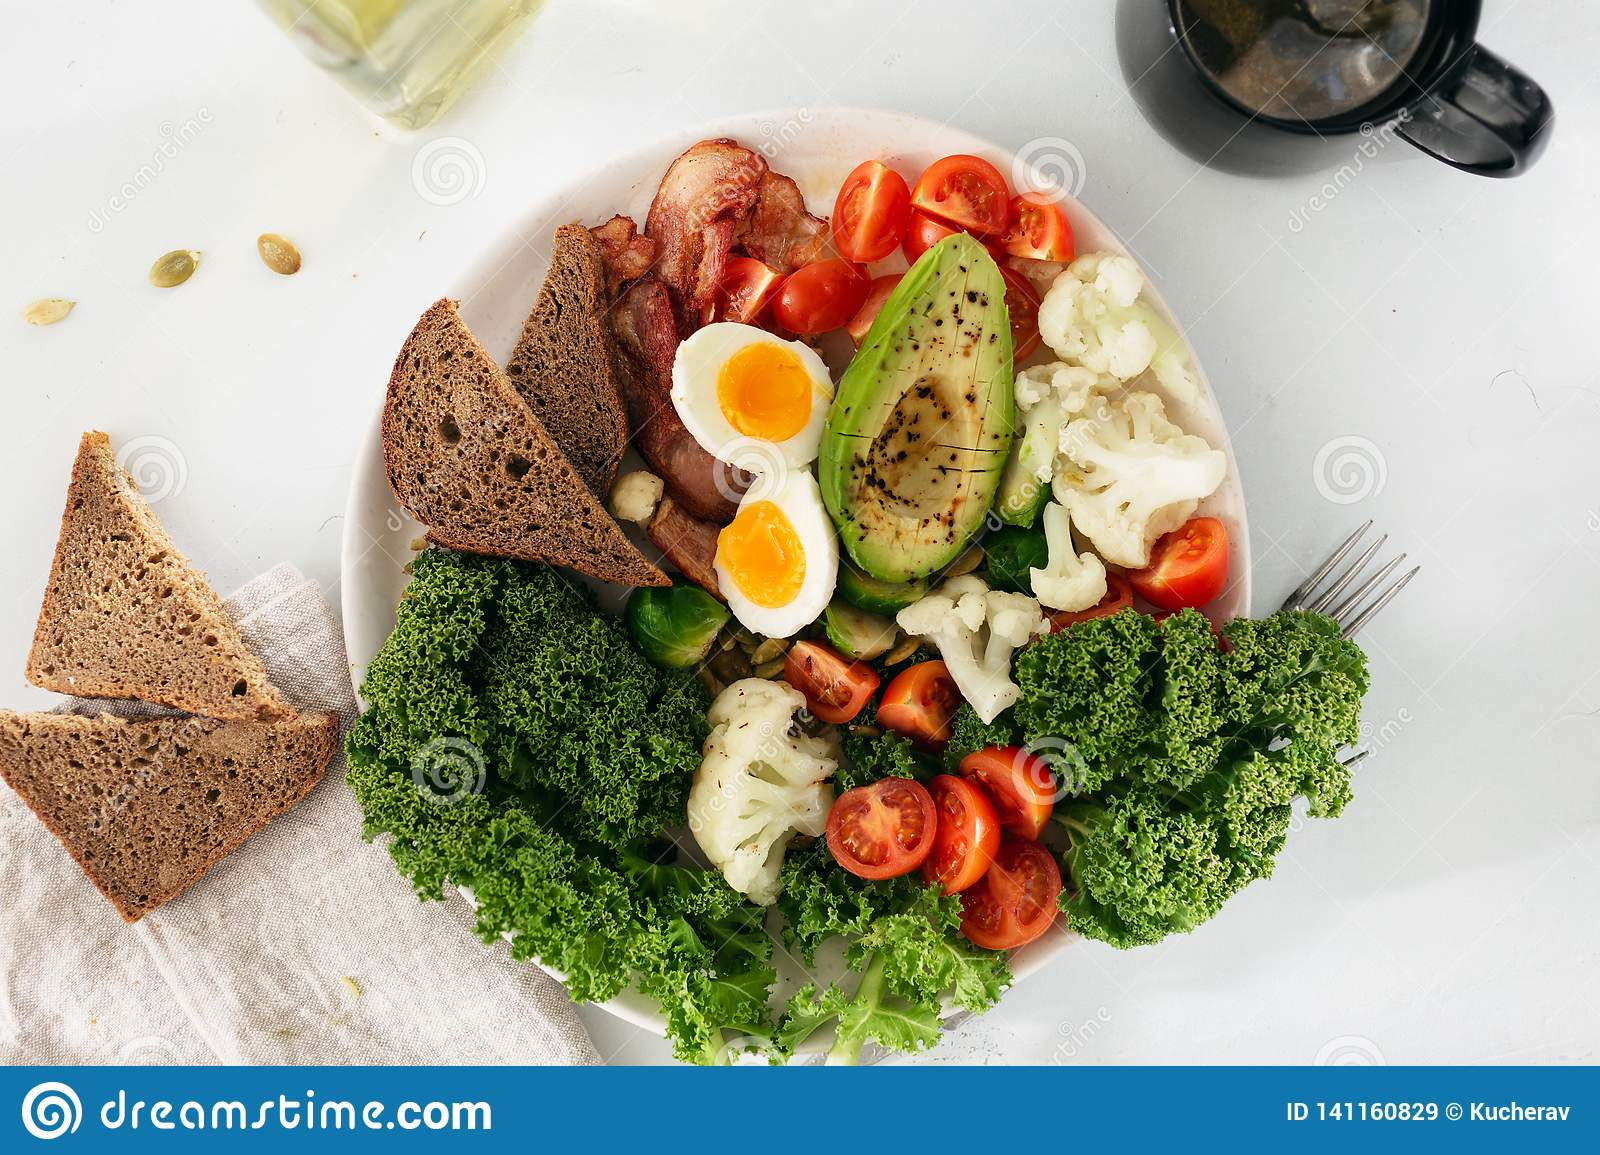 Plate Healthy Food Breakfast Lunch Top View Balanced Food Stock Image Image Of Flat Dinner 141160829